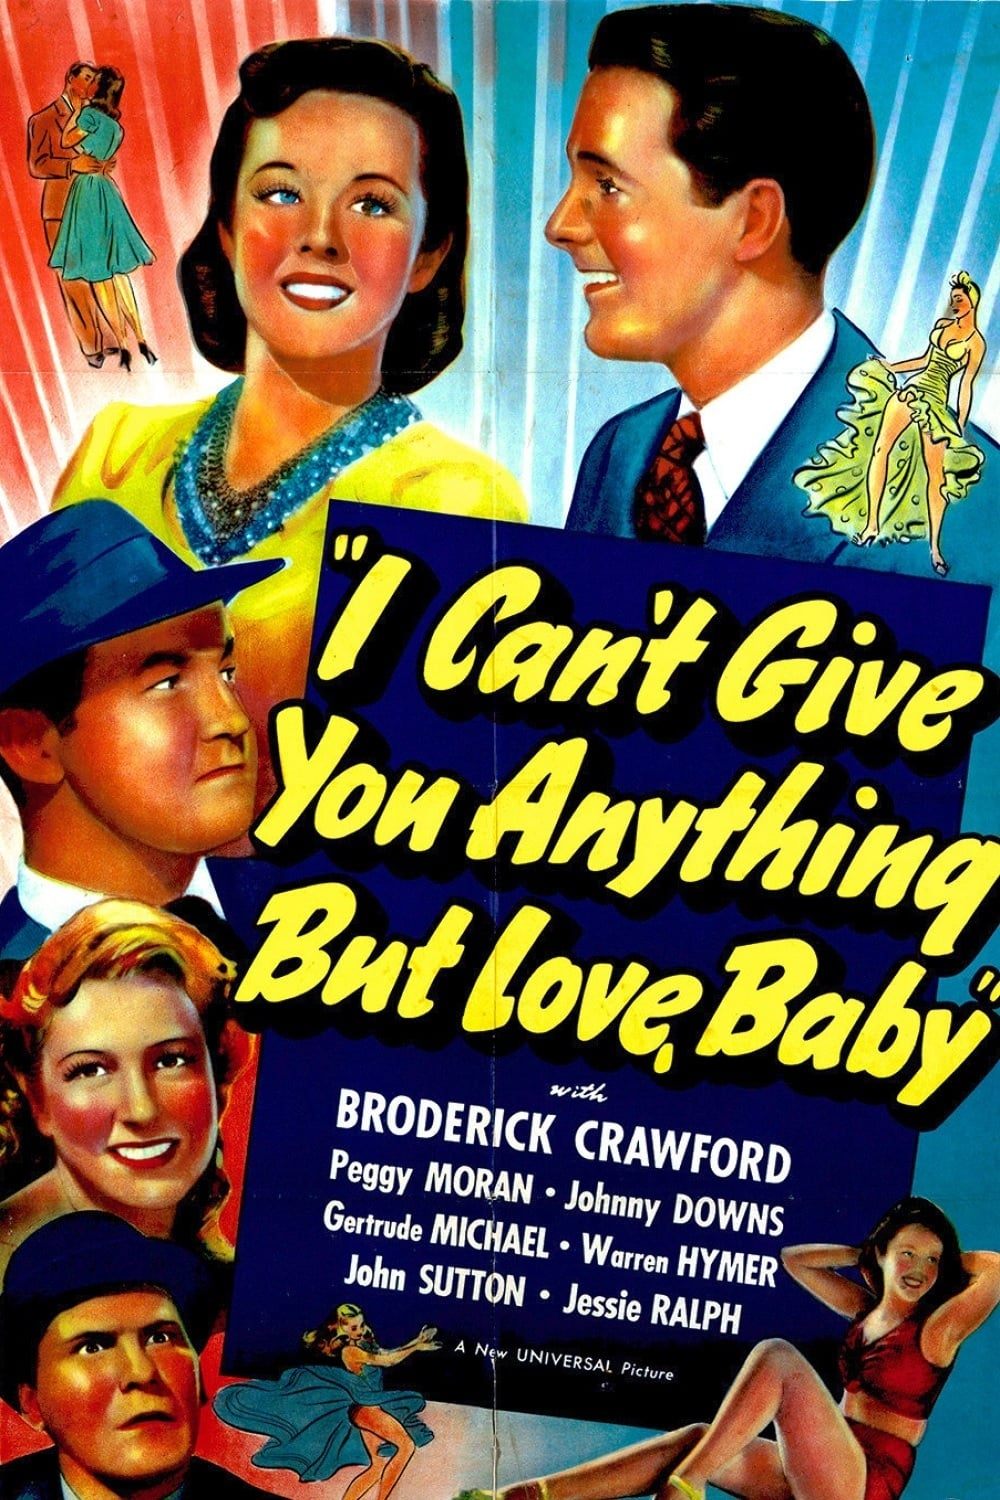 I Can't Give You Anything But Love, Baby (1940)